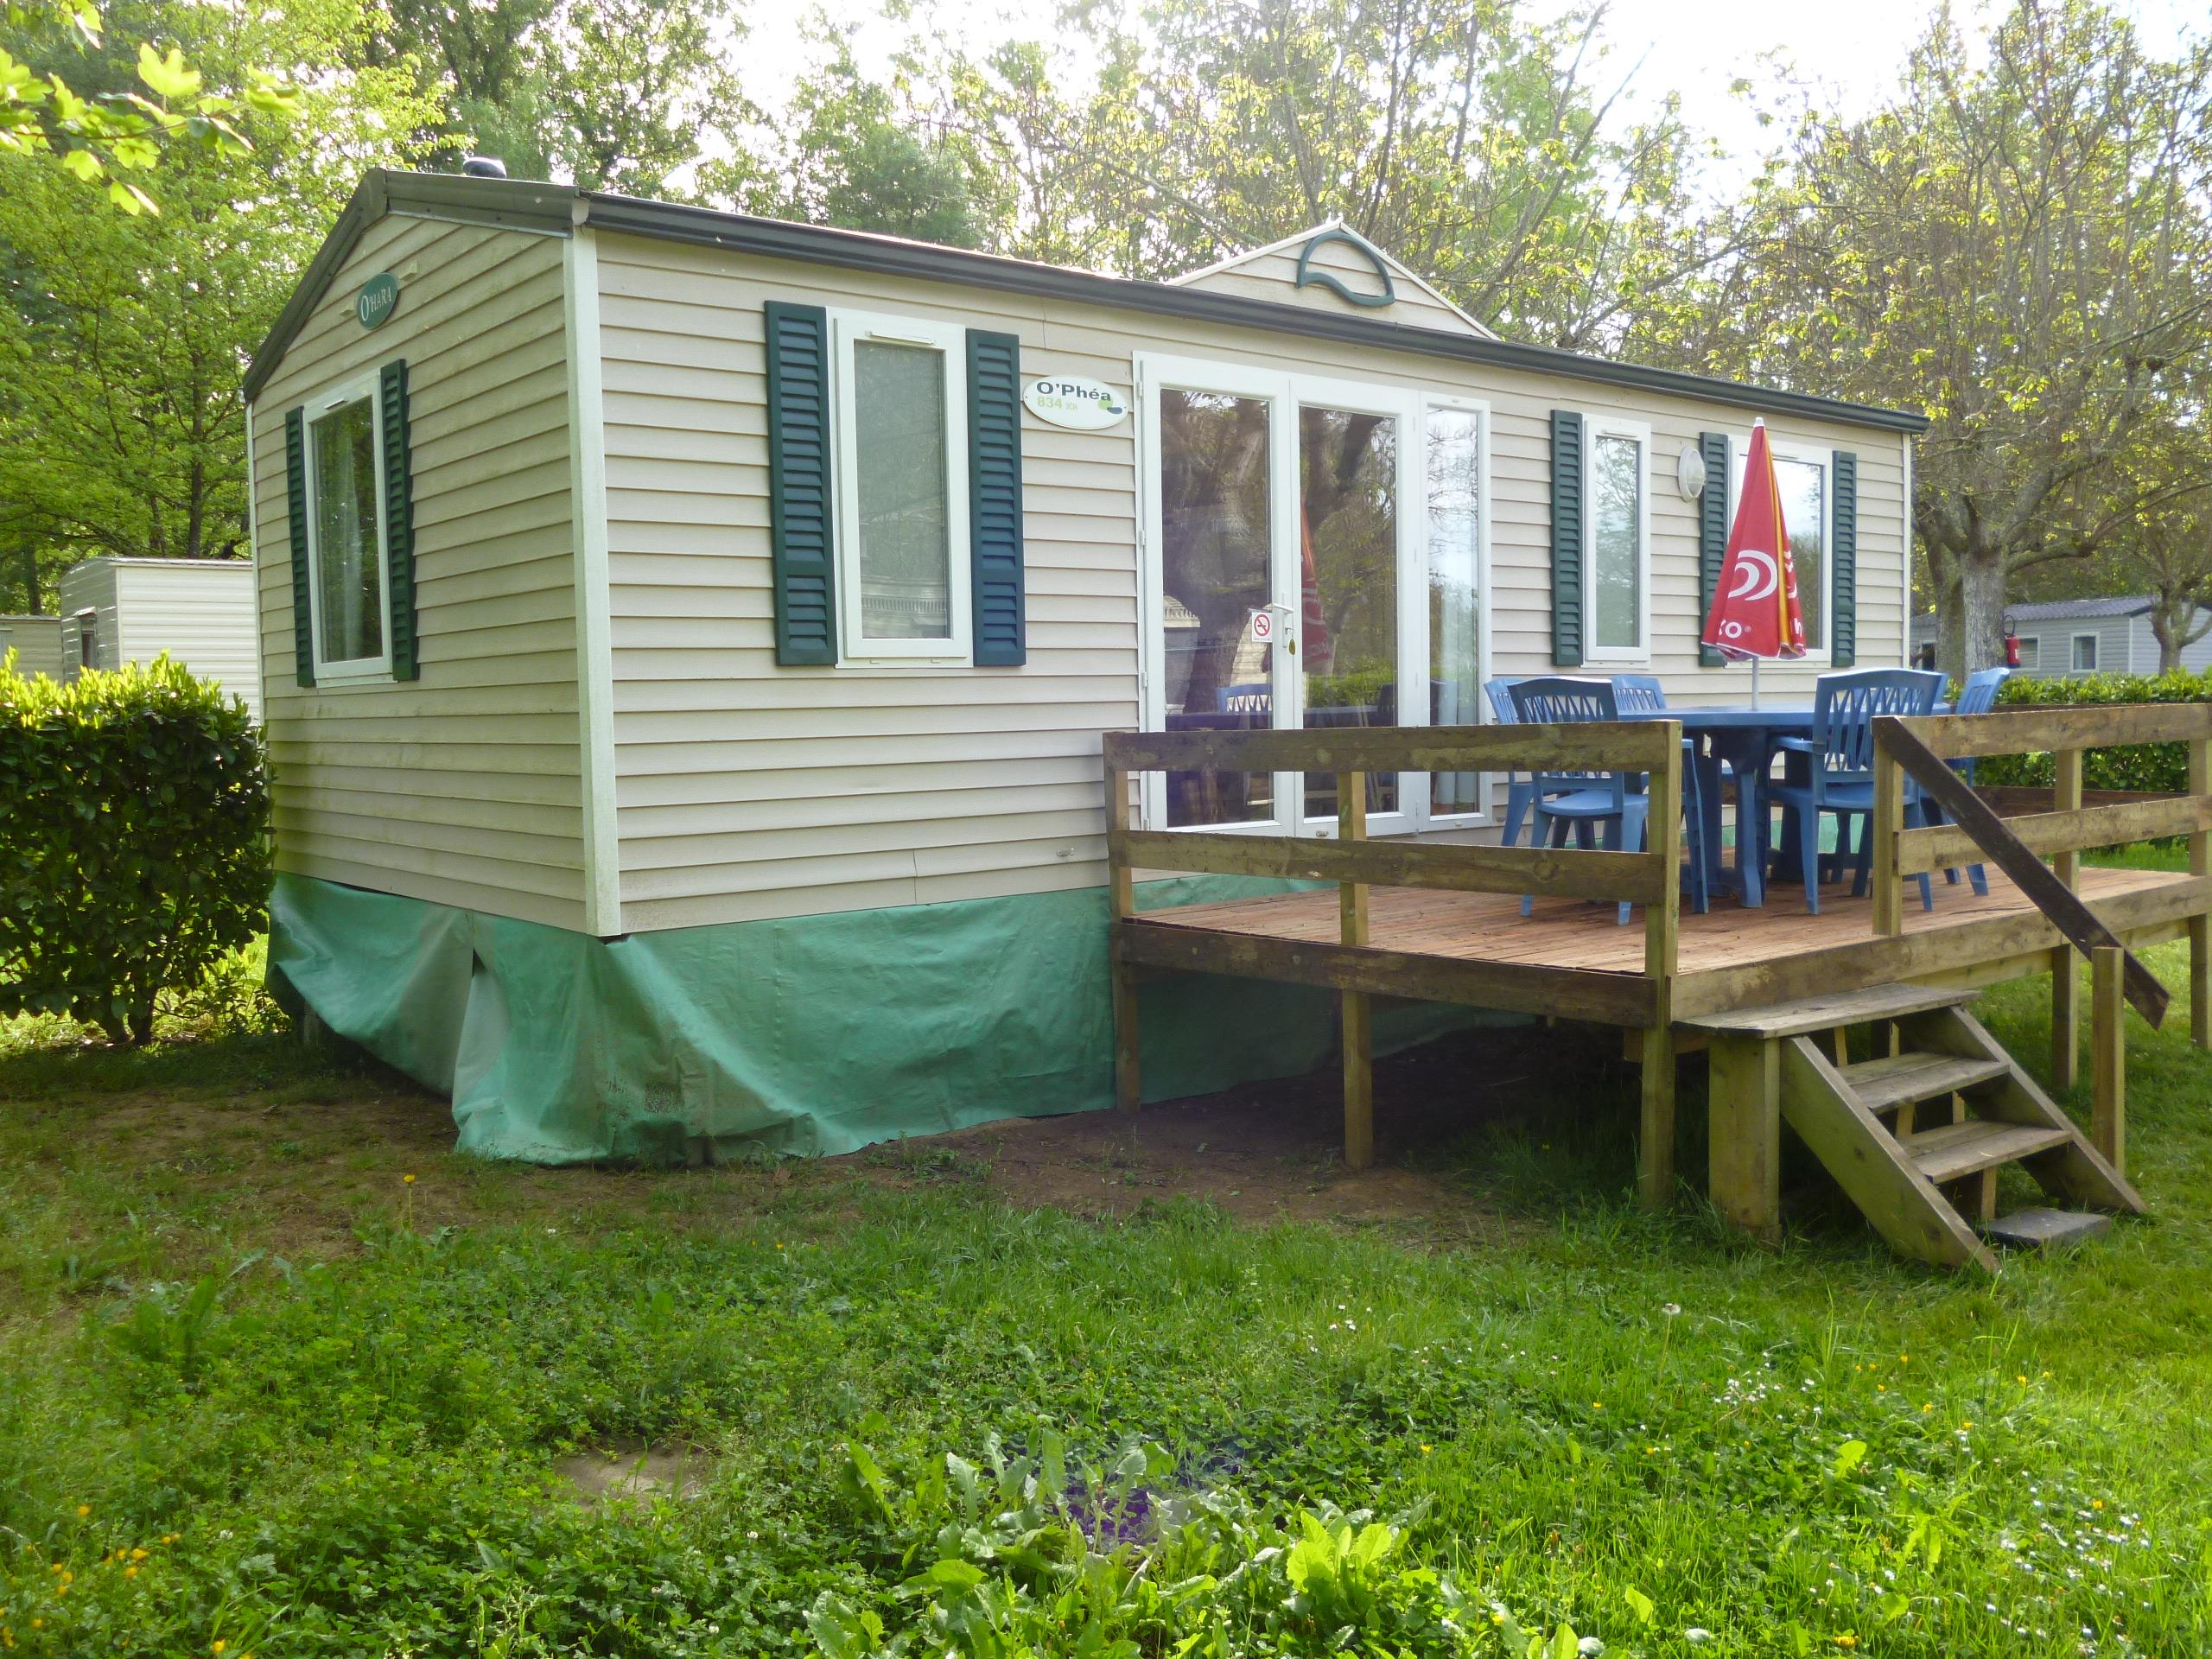 Huuraccommodaties - Mobil-Home 3 Kamers O'hara 2006 (X1) - Camping Le Mouliat